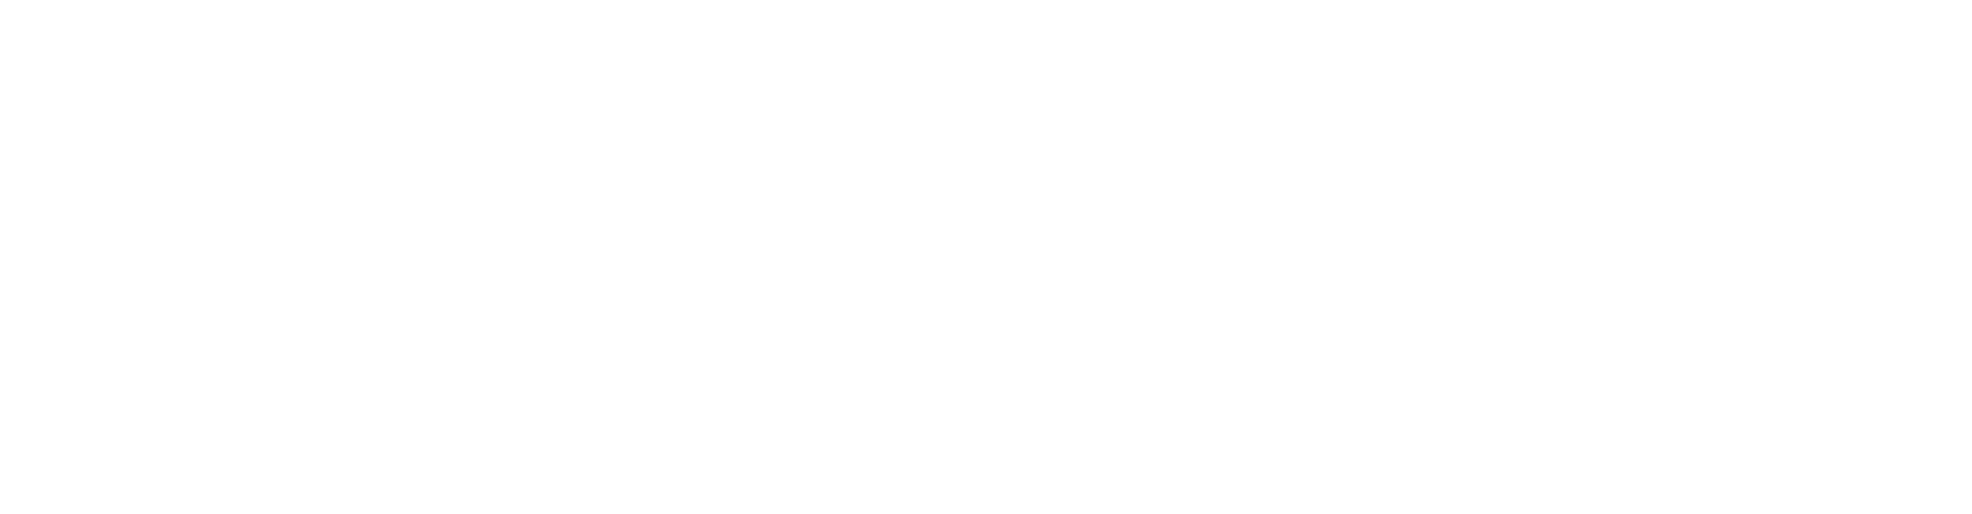 GoodFriend Self Storage East Hampton